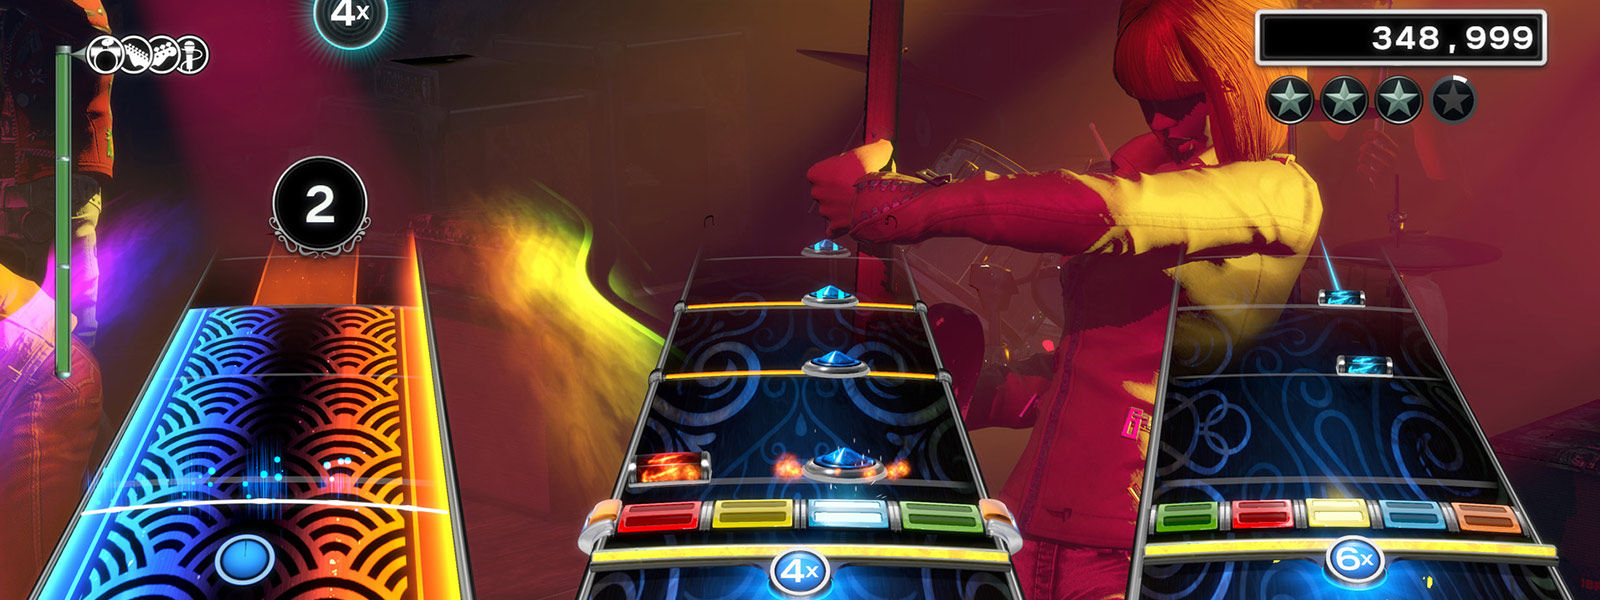 Gameplay screenshot of guitar, drums, and bass playing a song